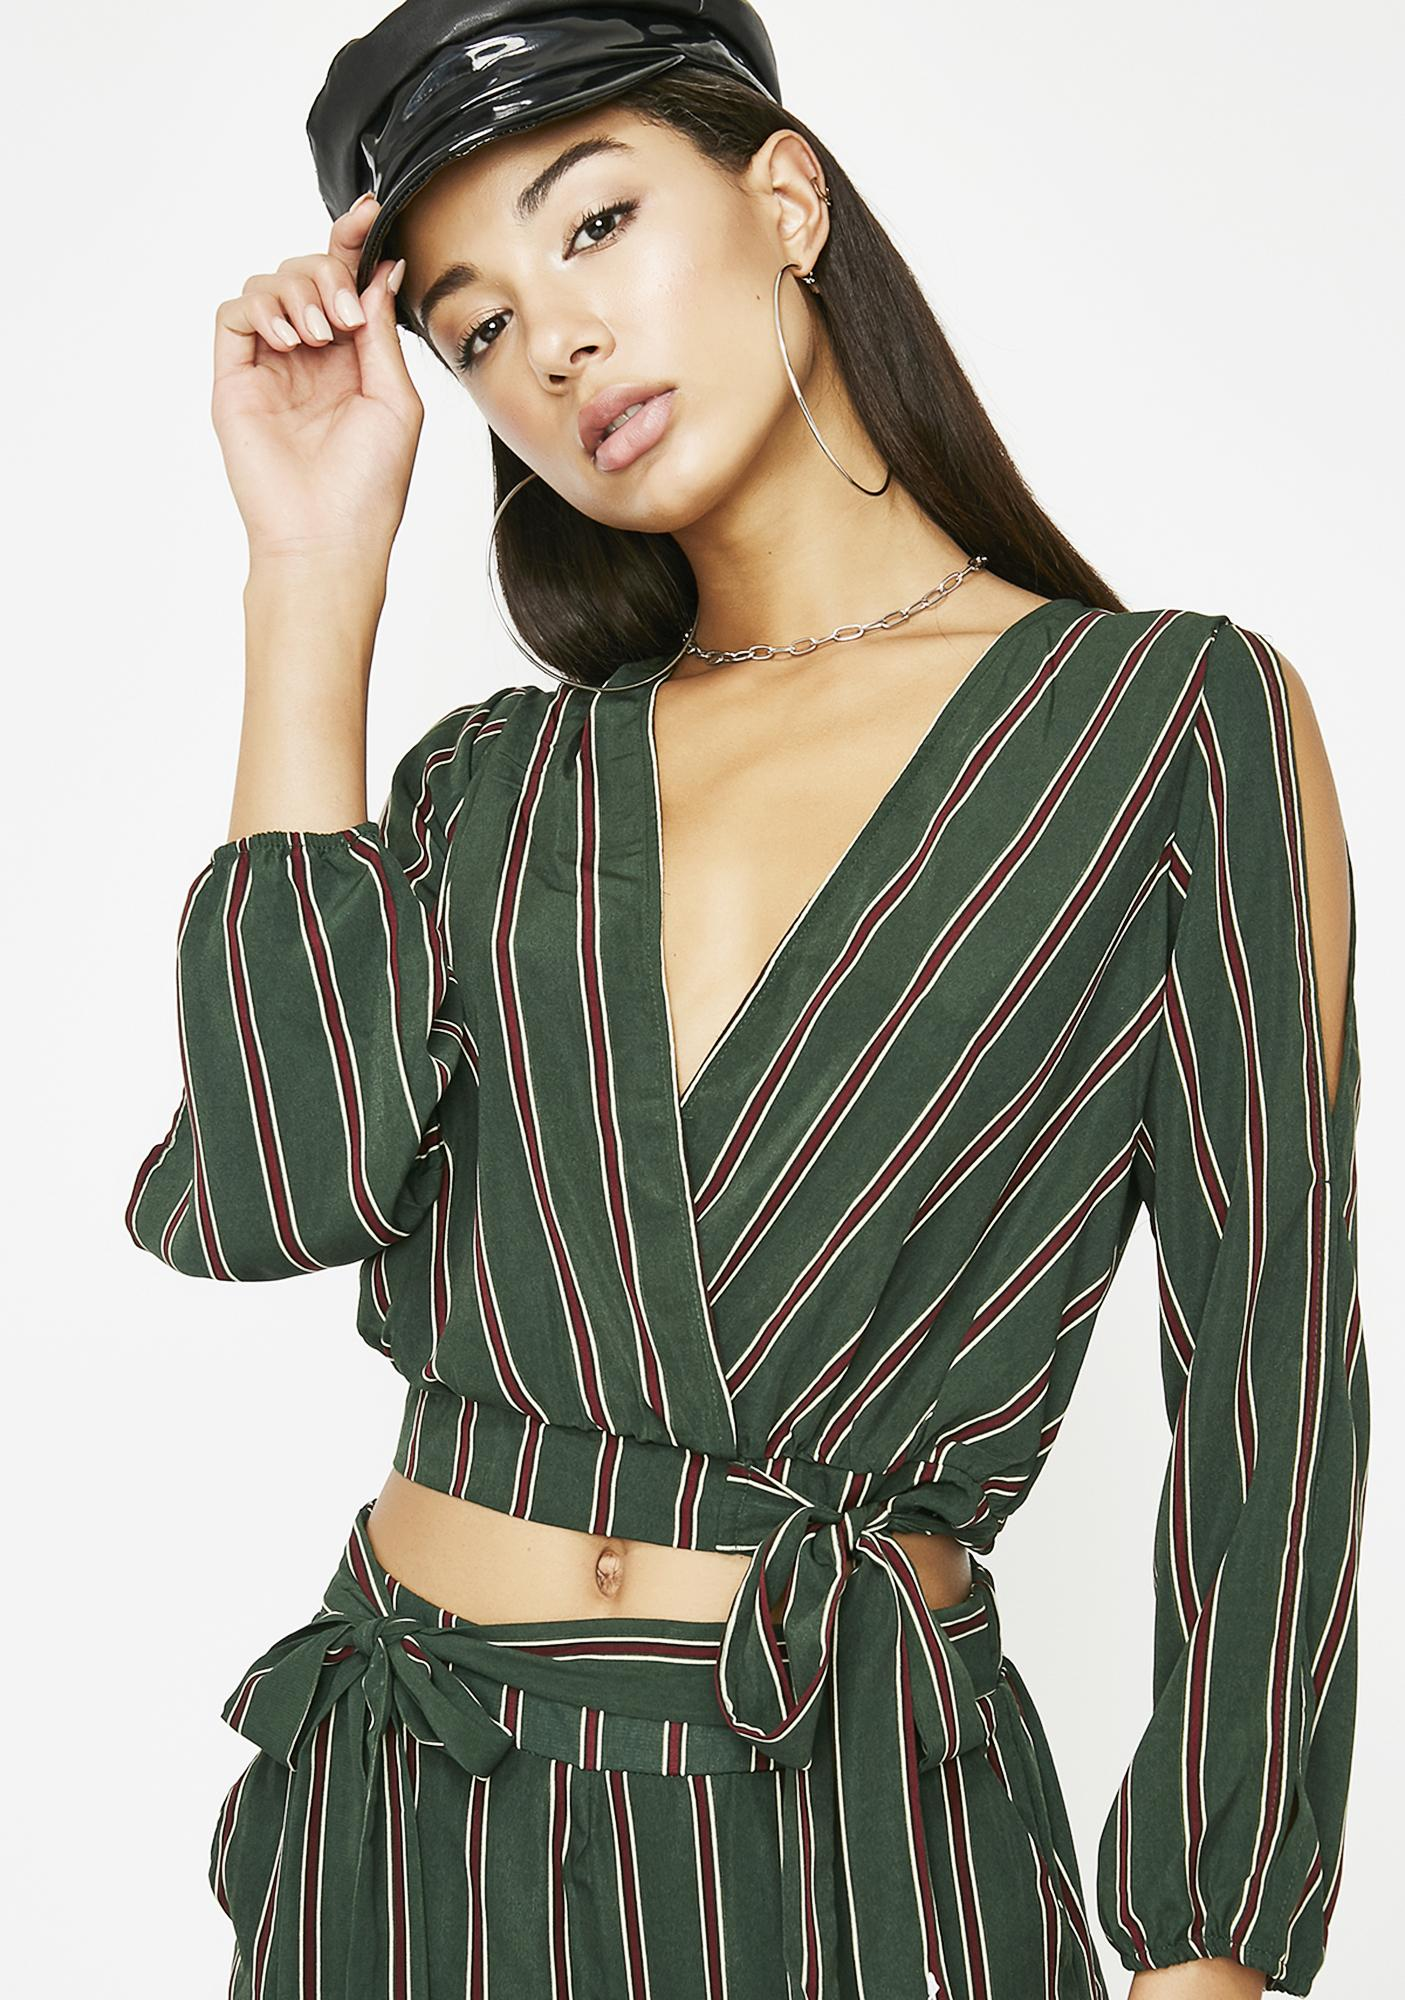 It's All Good Stripe Top by Edgemine